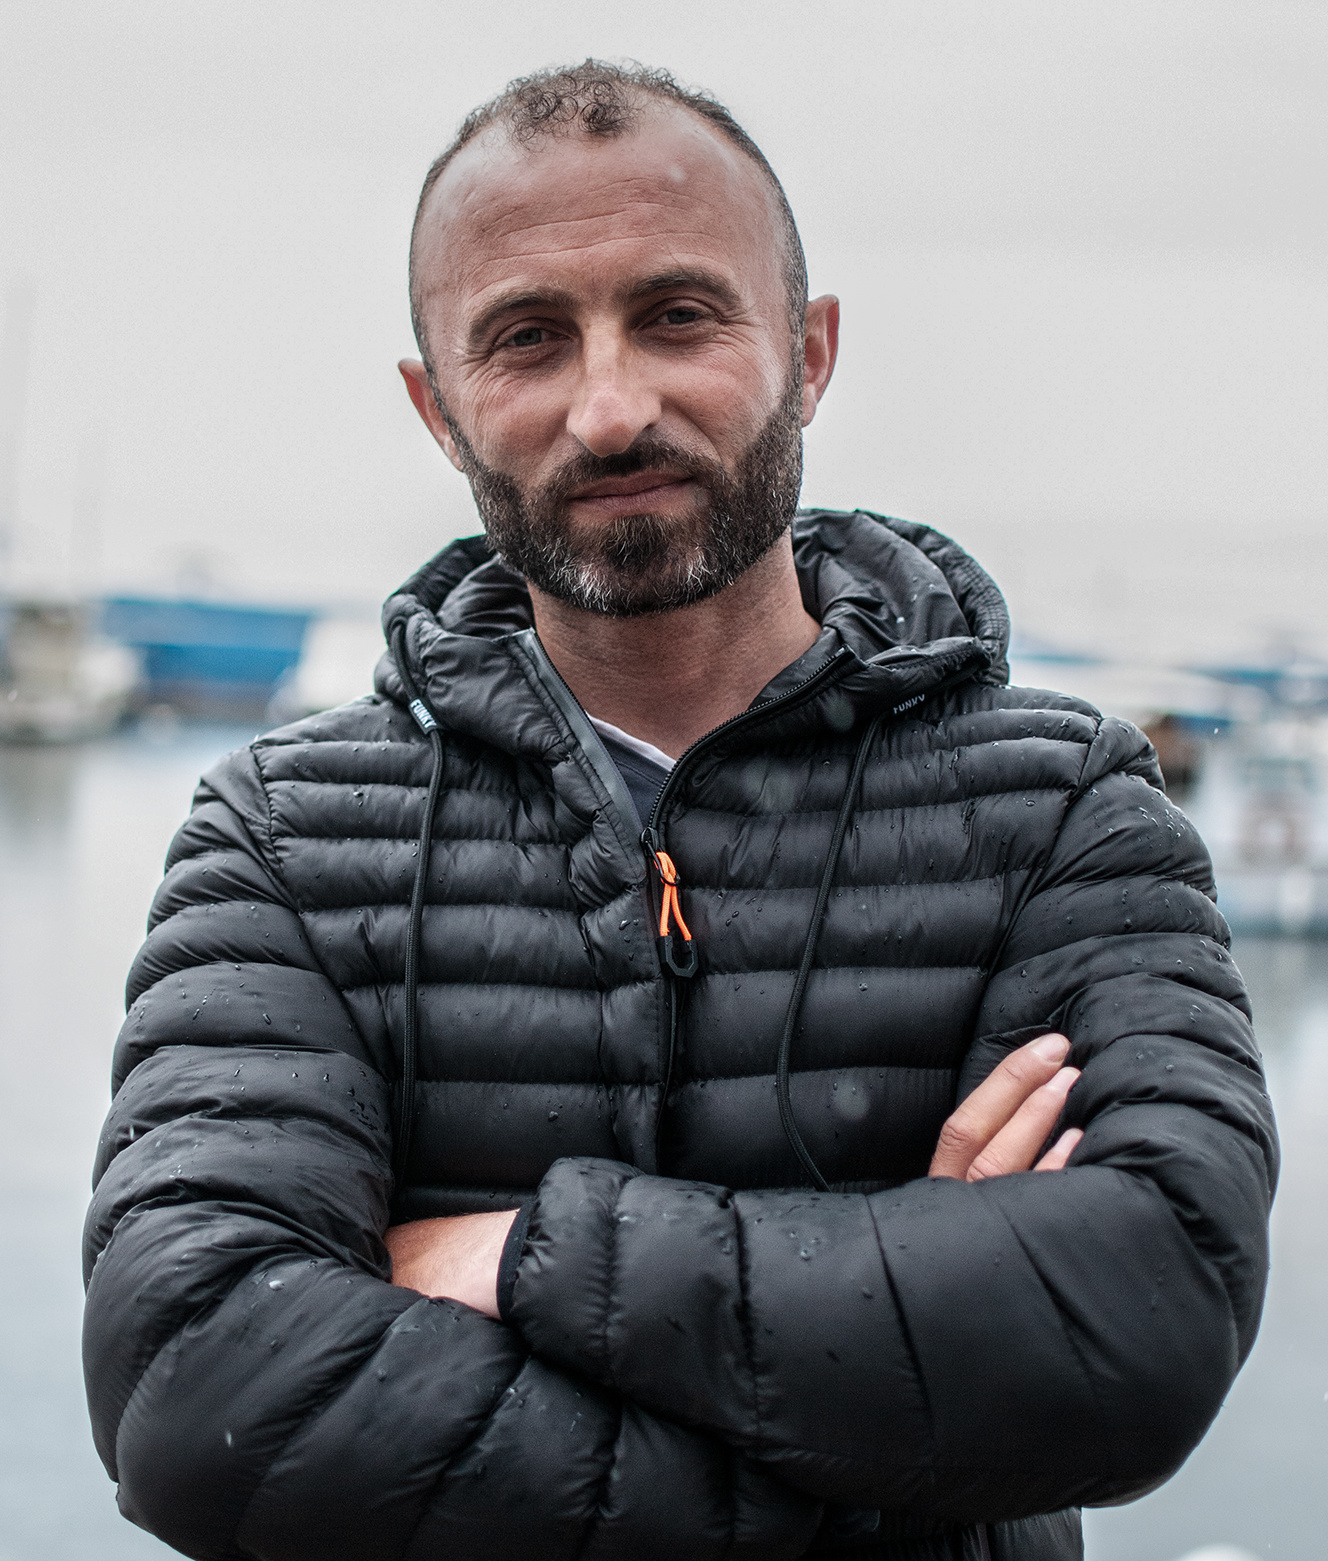 Ervin Xheka, an Albanian-born fisherman who now lives in Greece. Credits: Edges of Europe team